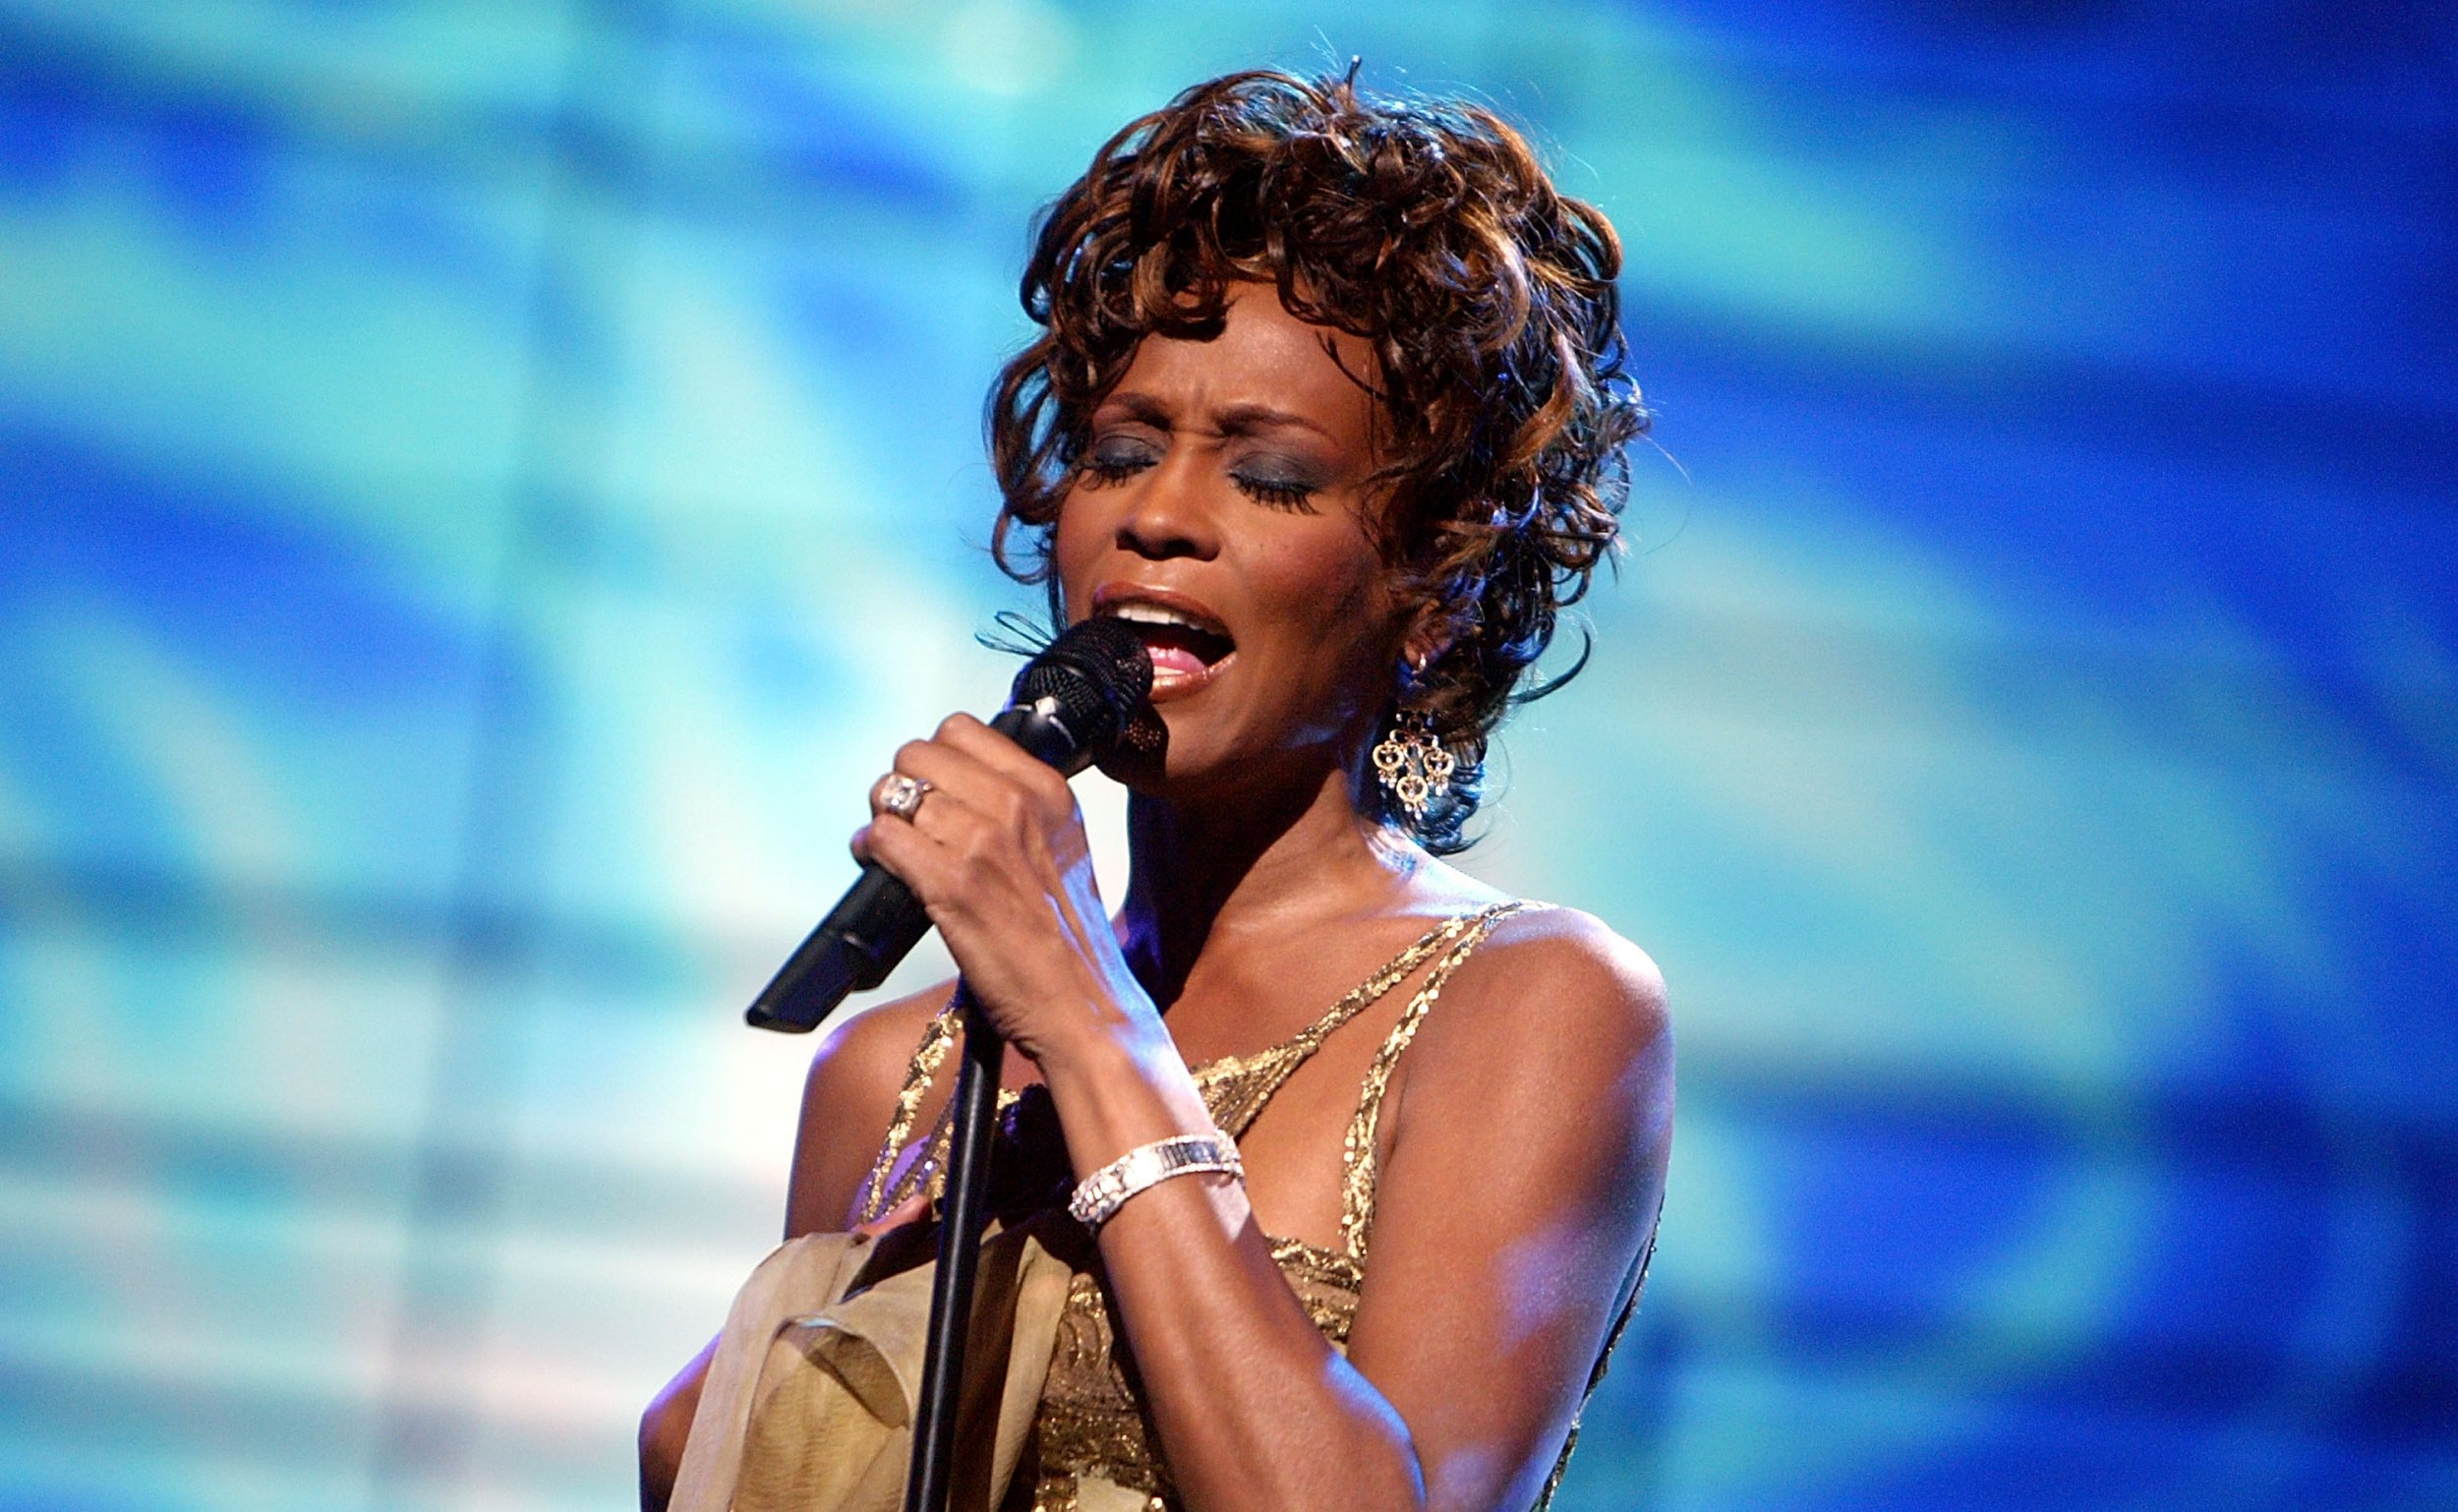 New look at Whitney Houston documentary shares tragic insight into icon's life in the limelight